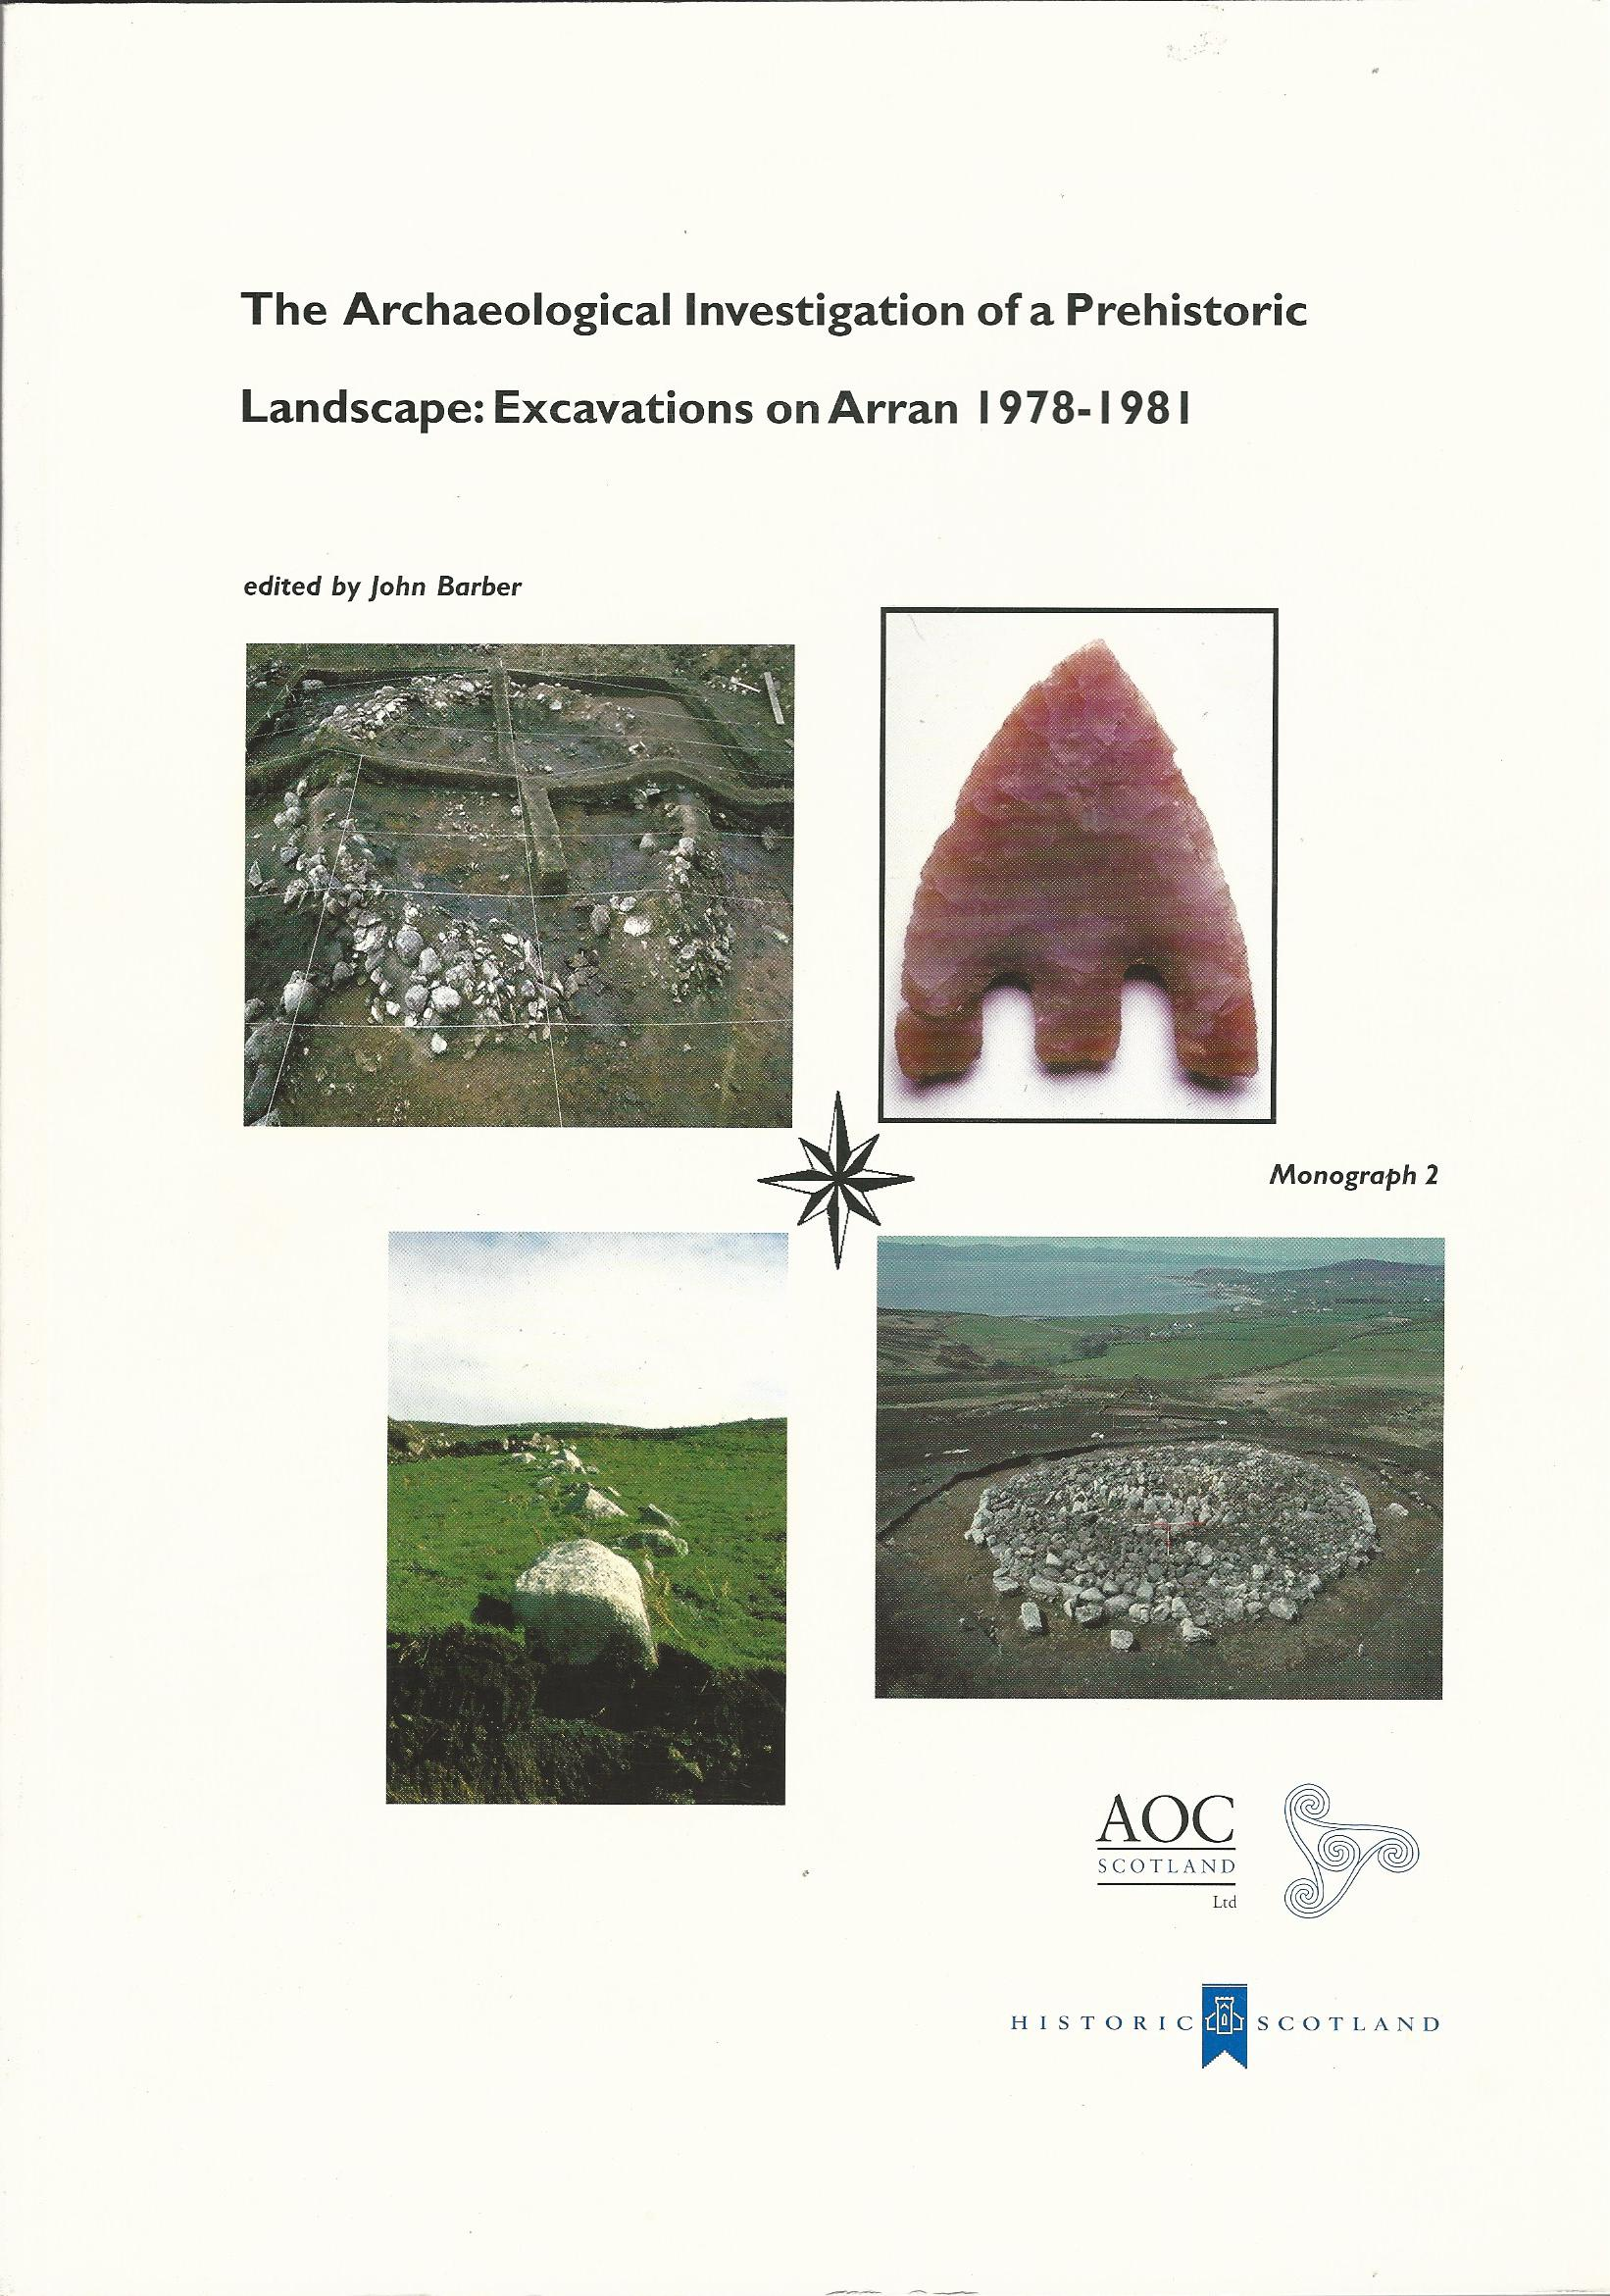 Image for The Archaeological Investigation of a Prehistoric Landscape: Excavations on Arran 1978-81 (STAR Monograph)